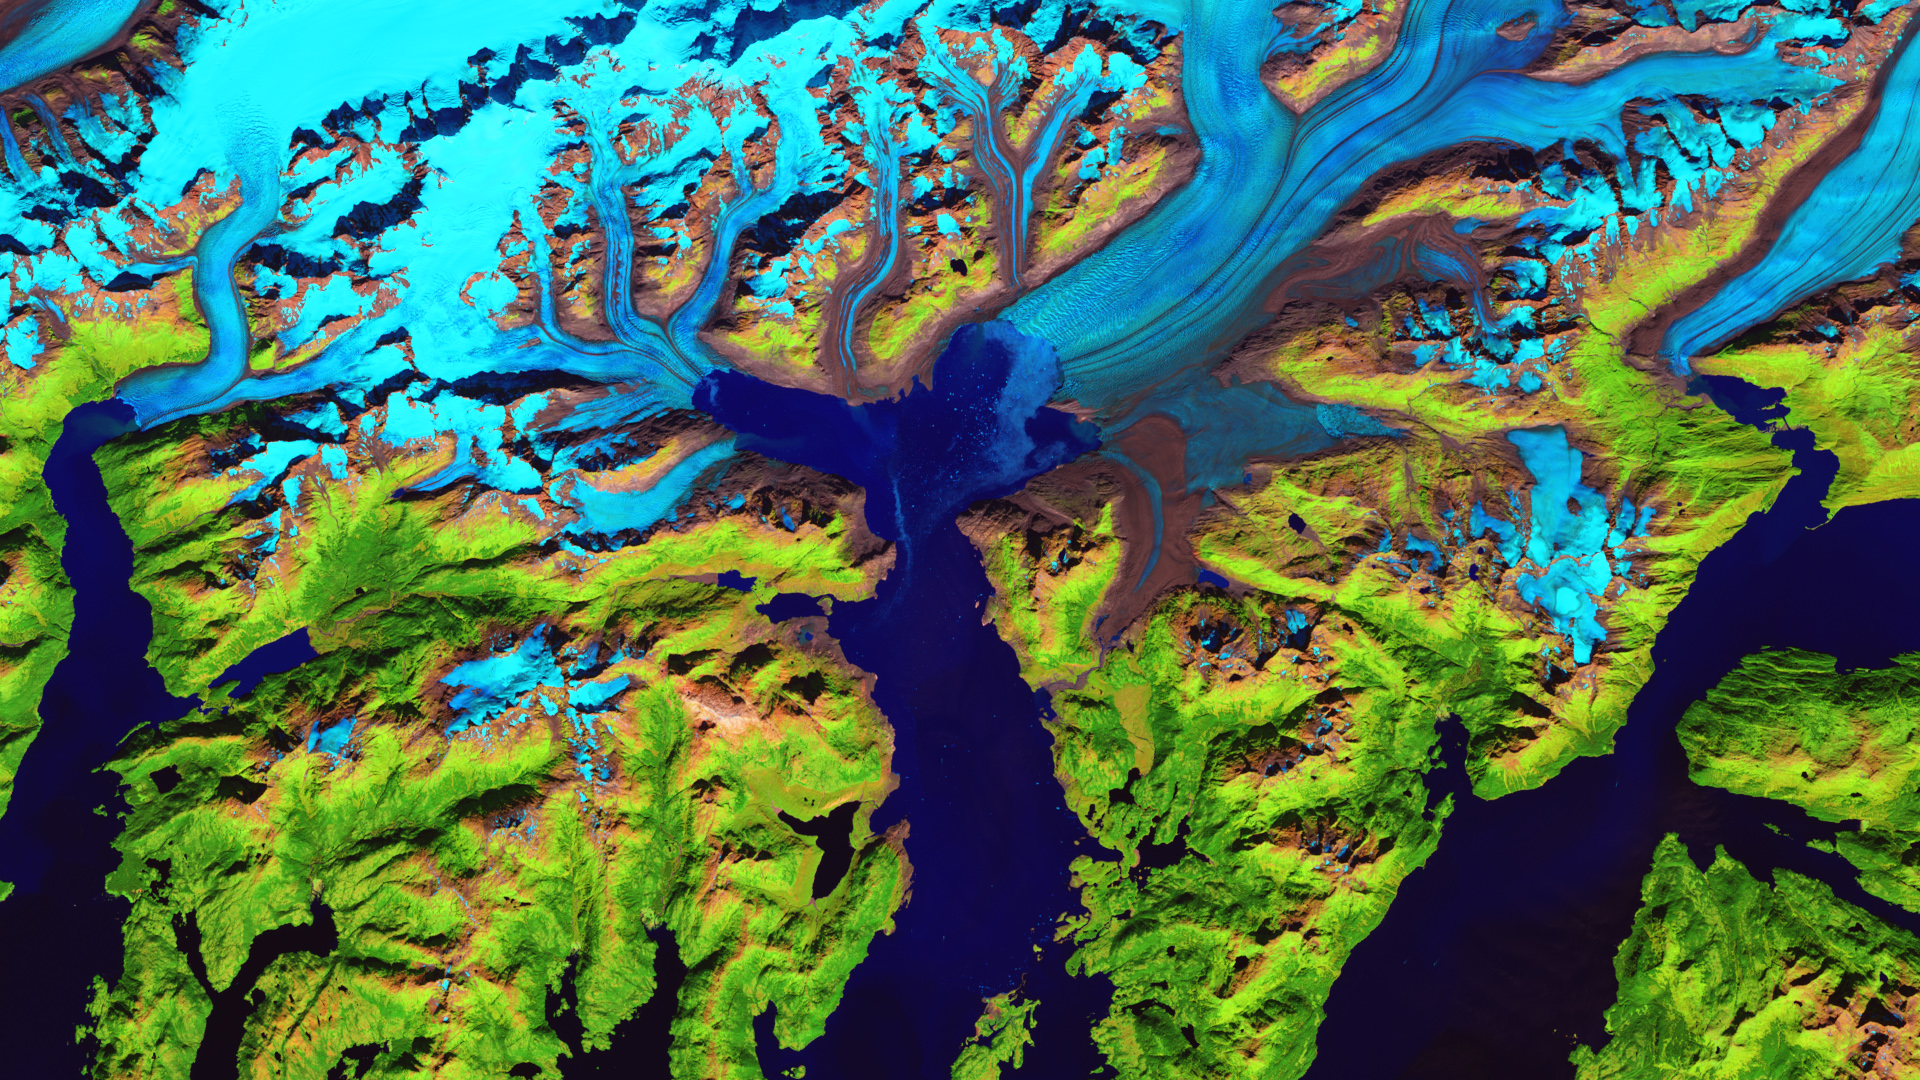 The Columbia Glacier in Alaska has retreated 12 miles in 30 years. (Pictured here in September 2016)